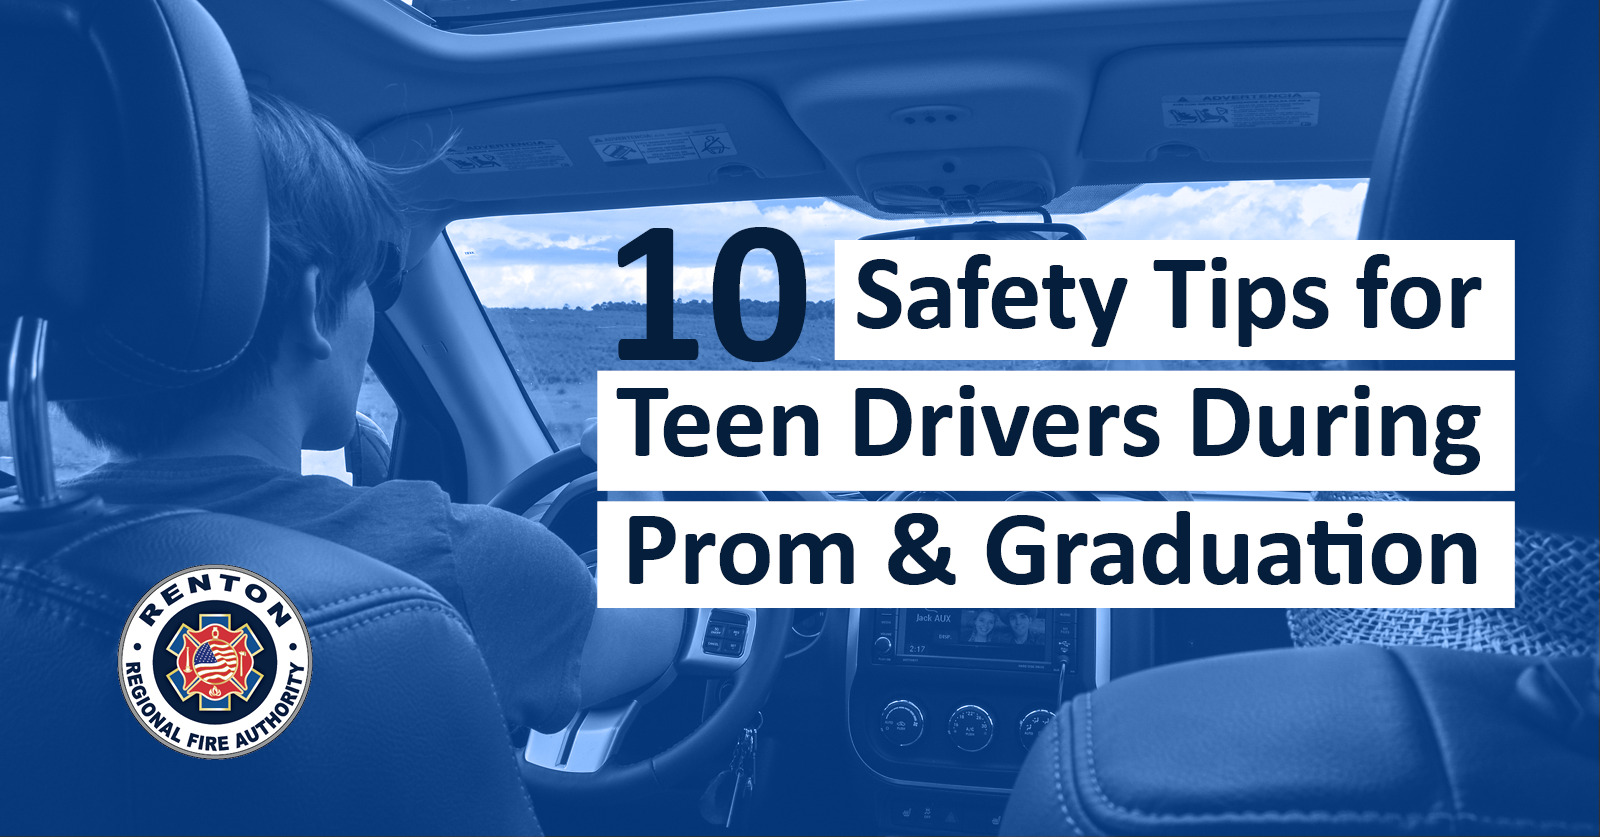 10 Safety Tips for Teen Drivers During Prom & Graduation